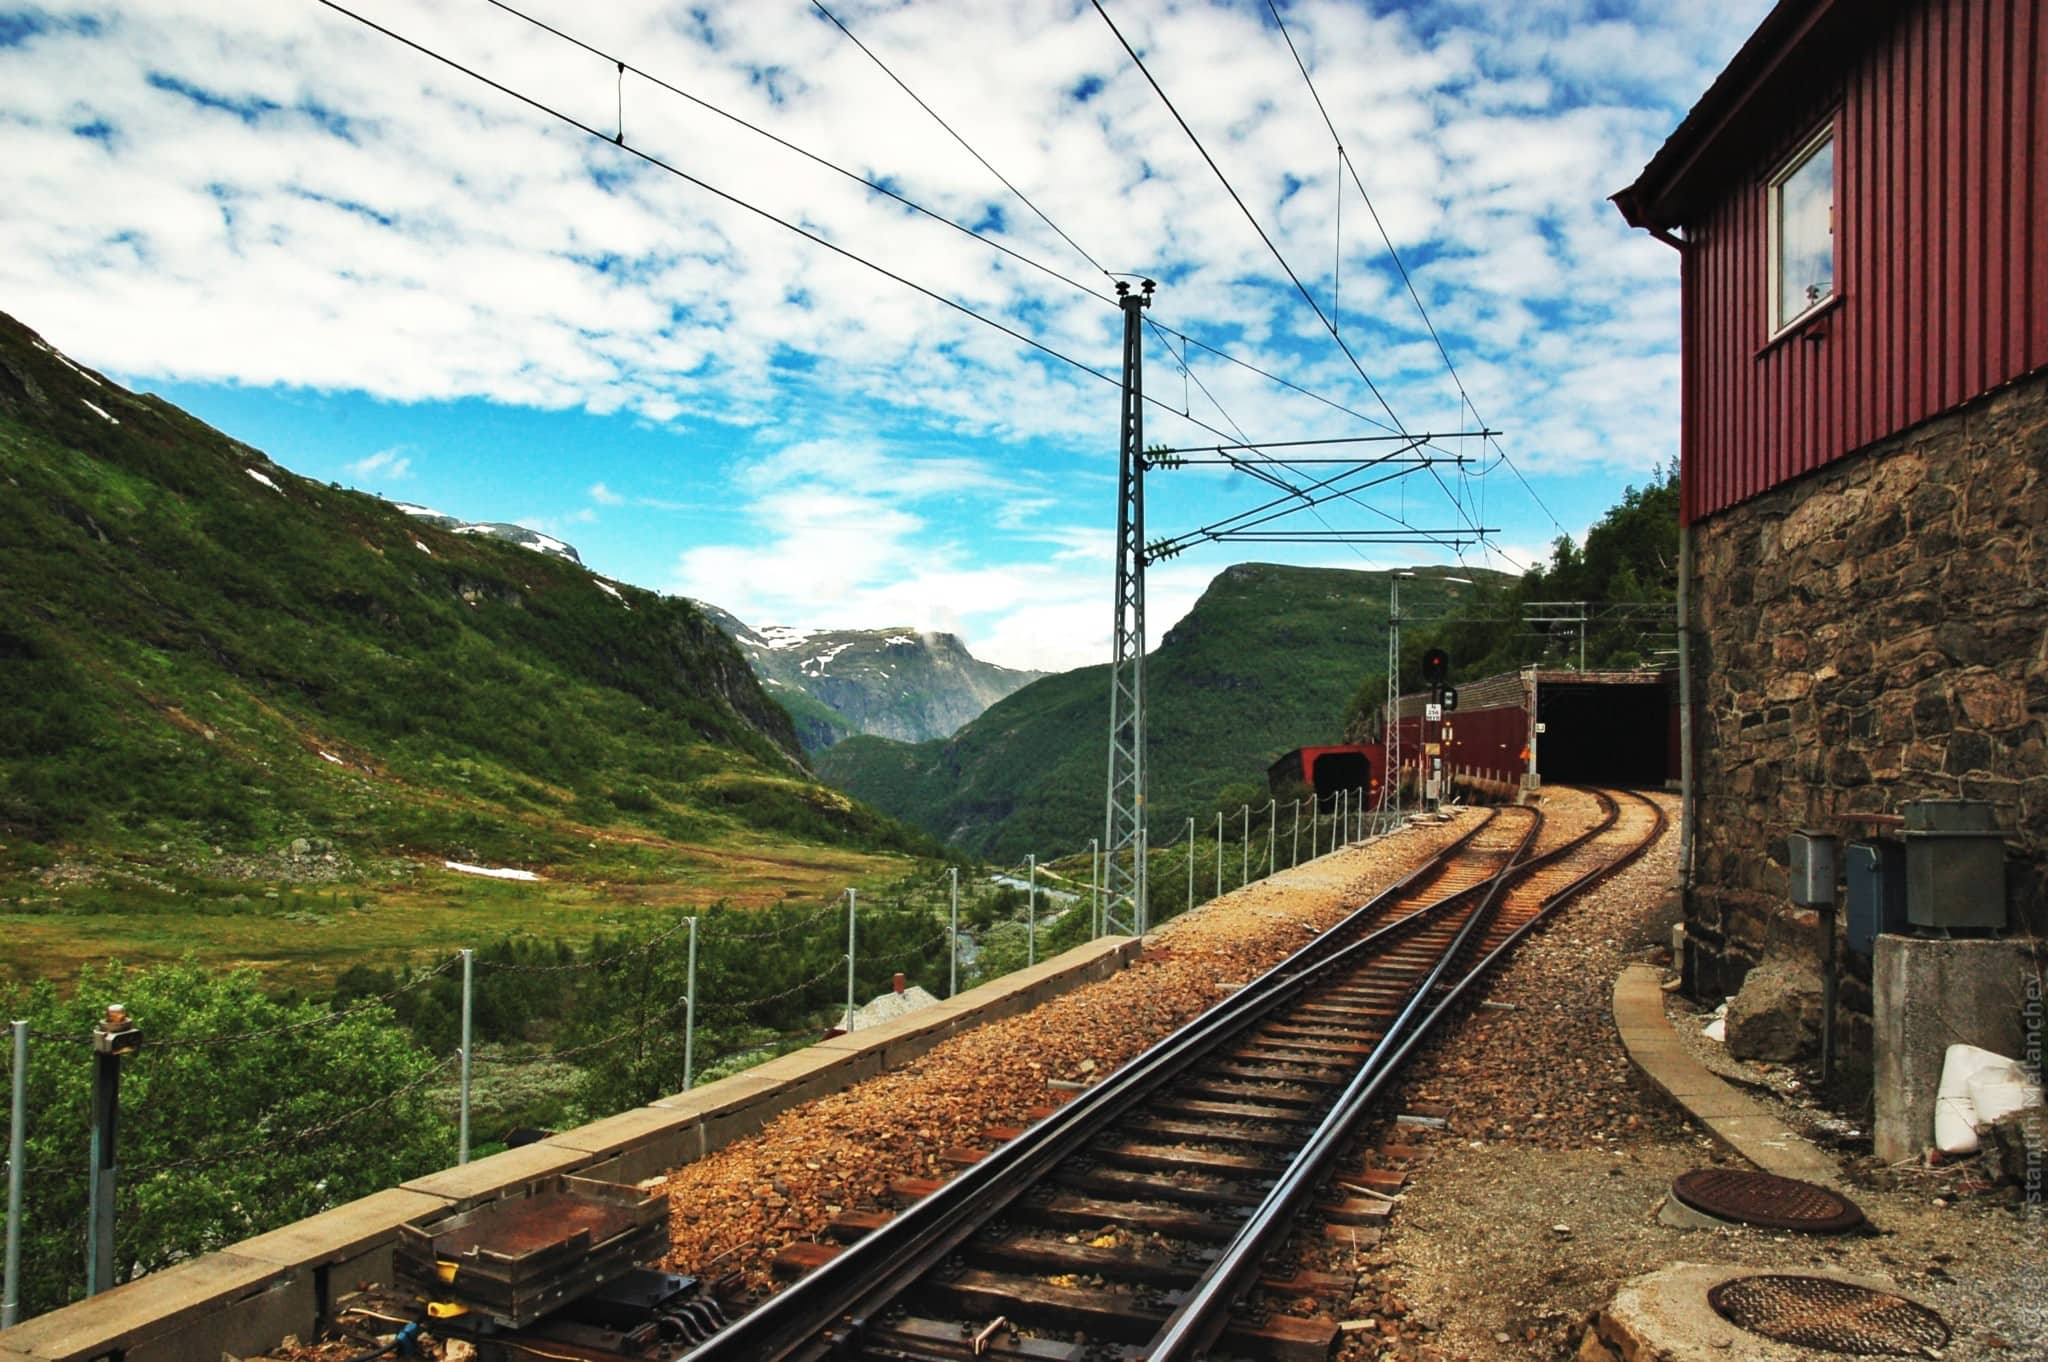 The Bergensbanen takes no less than 6 to 7 hours, but it is worth every minute!